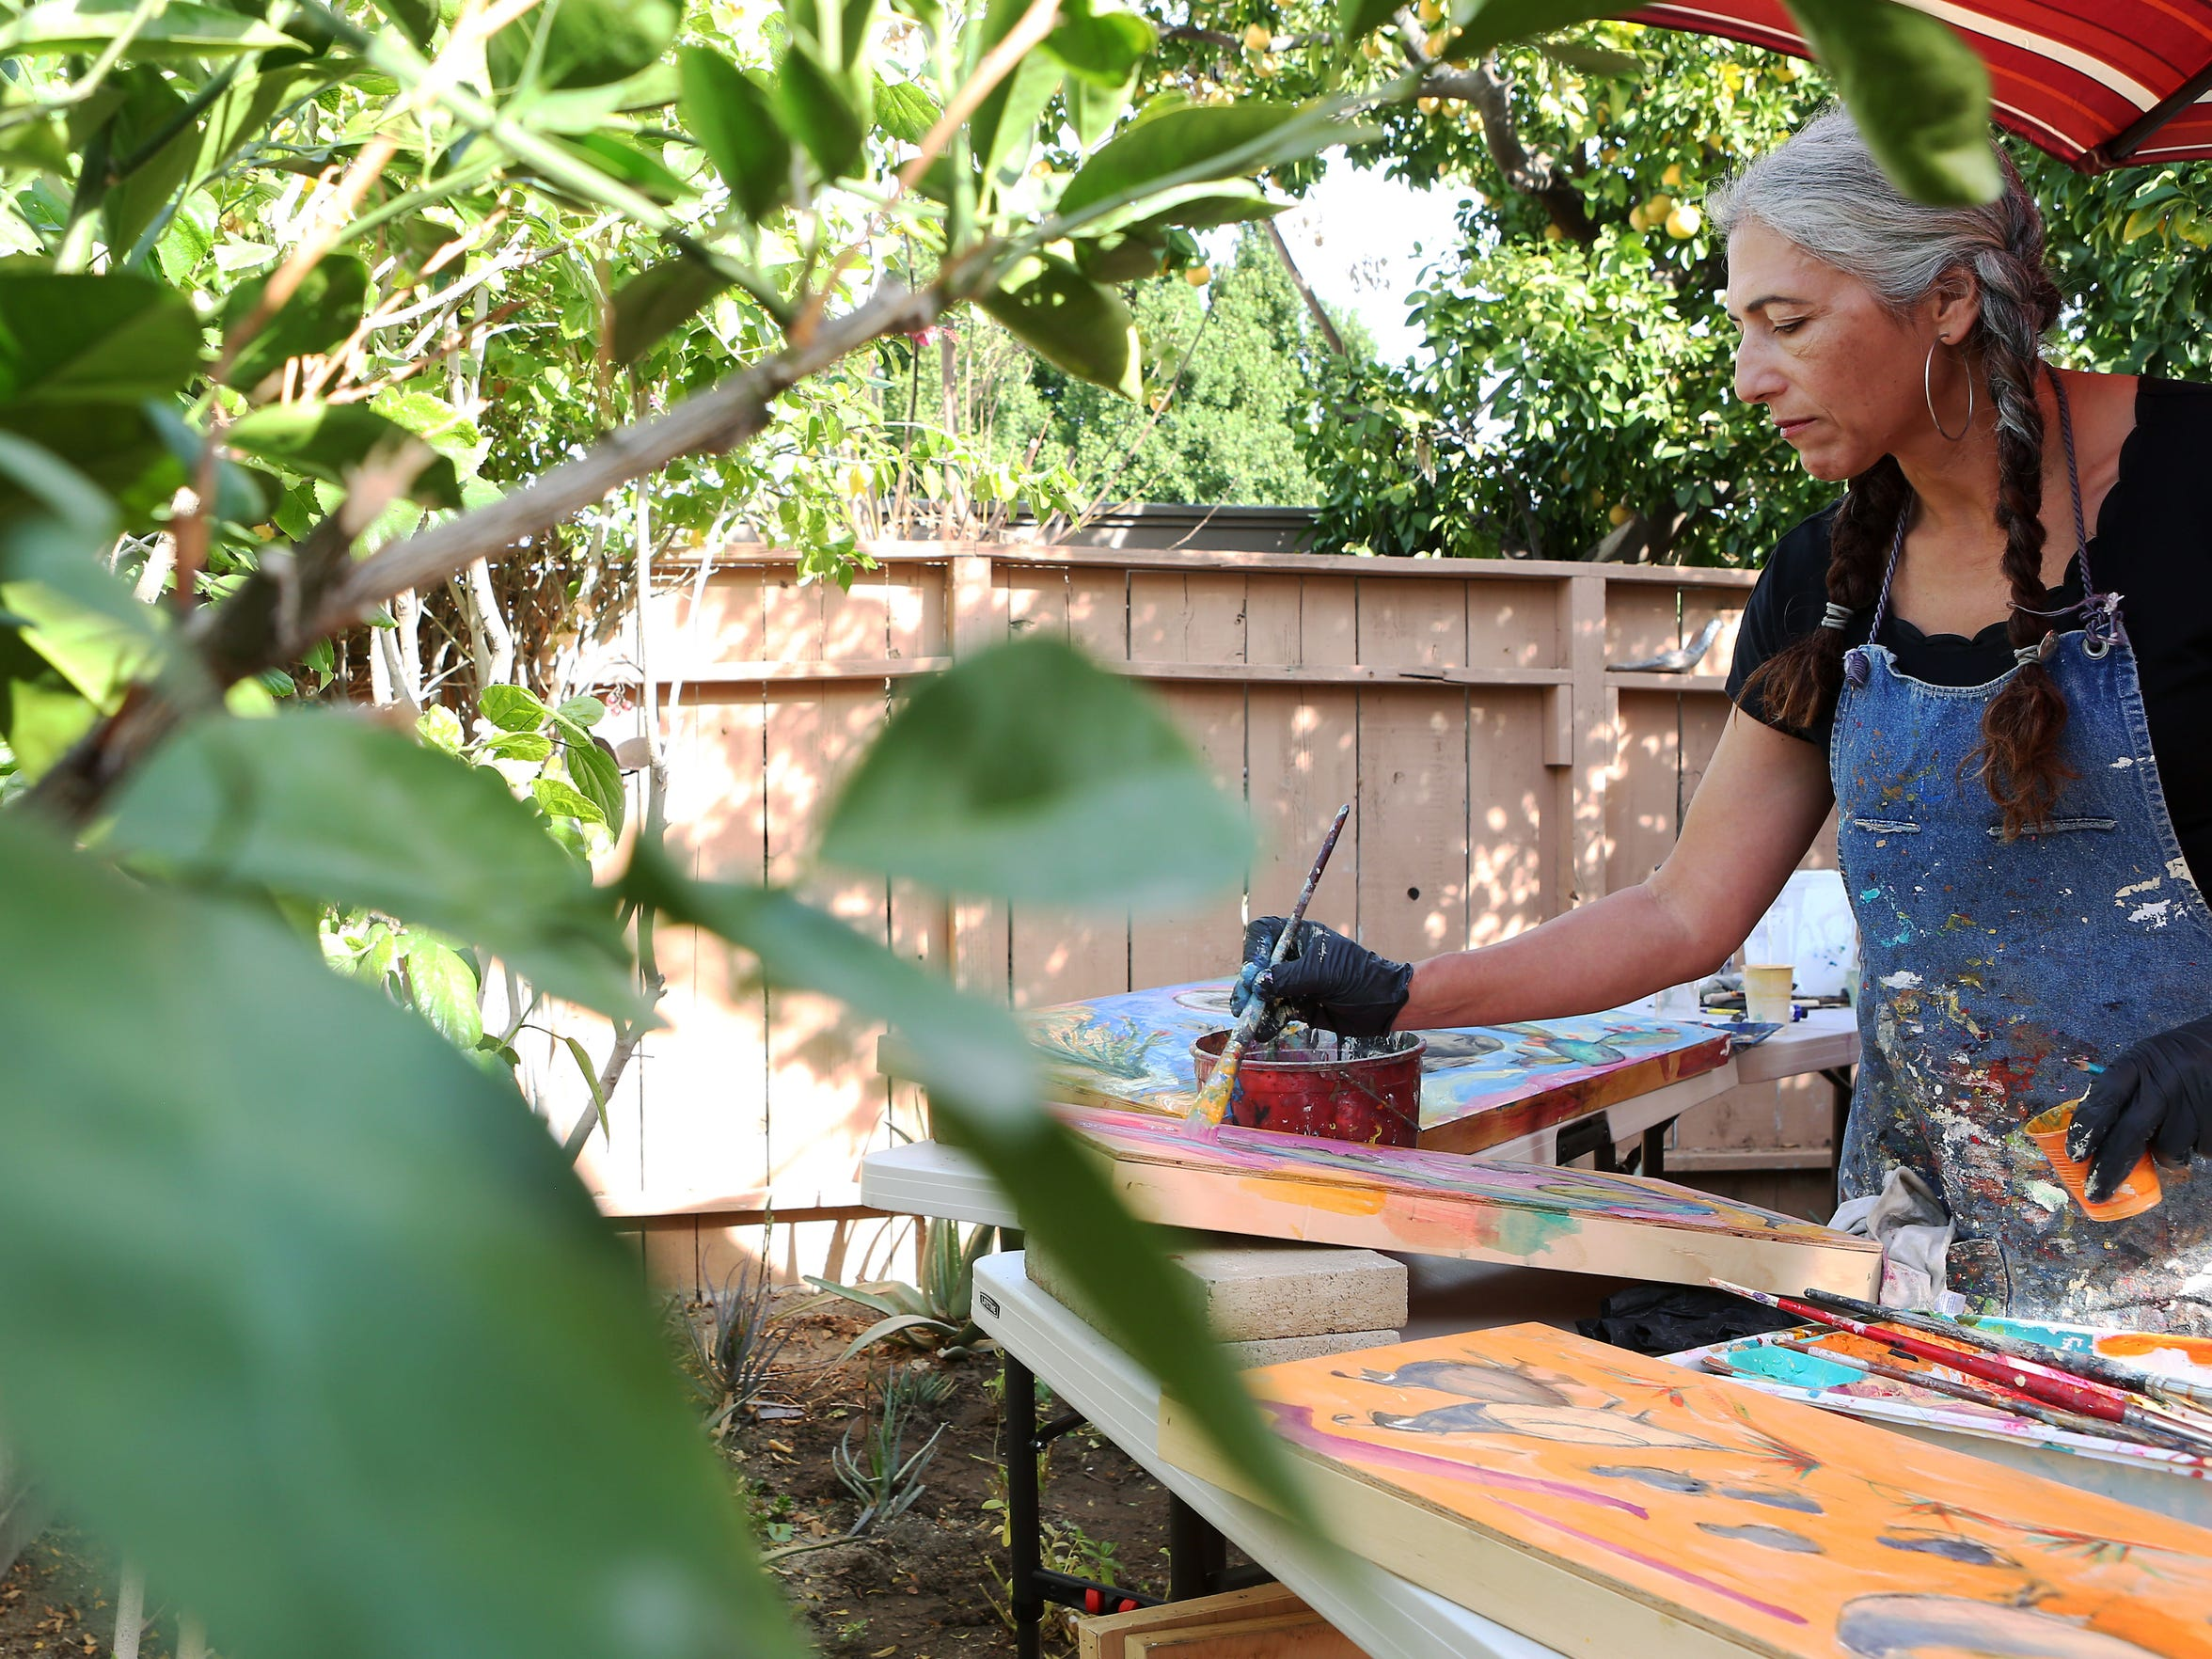 Painter Cristina Acosta paints a desert landscape in her backyard on Tuesday, January 20, 2015 in Palm Springs, Calif.